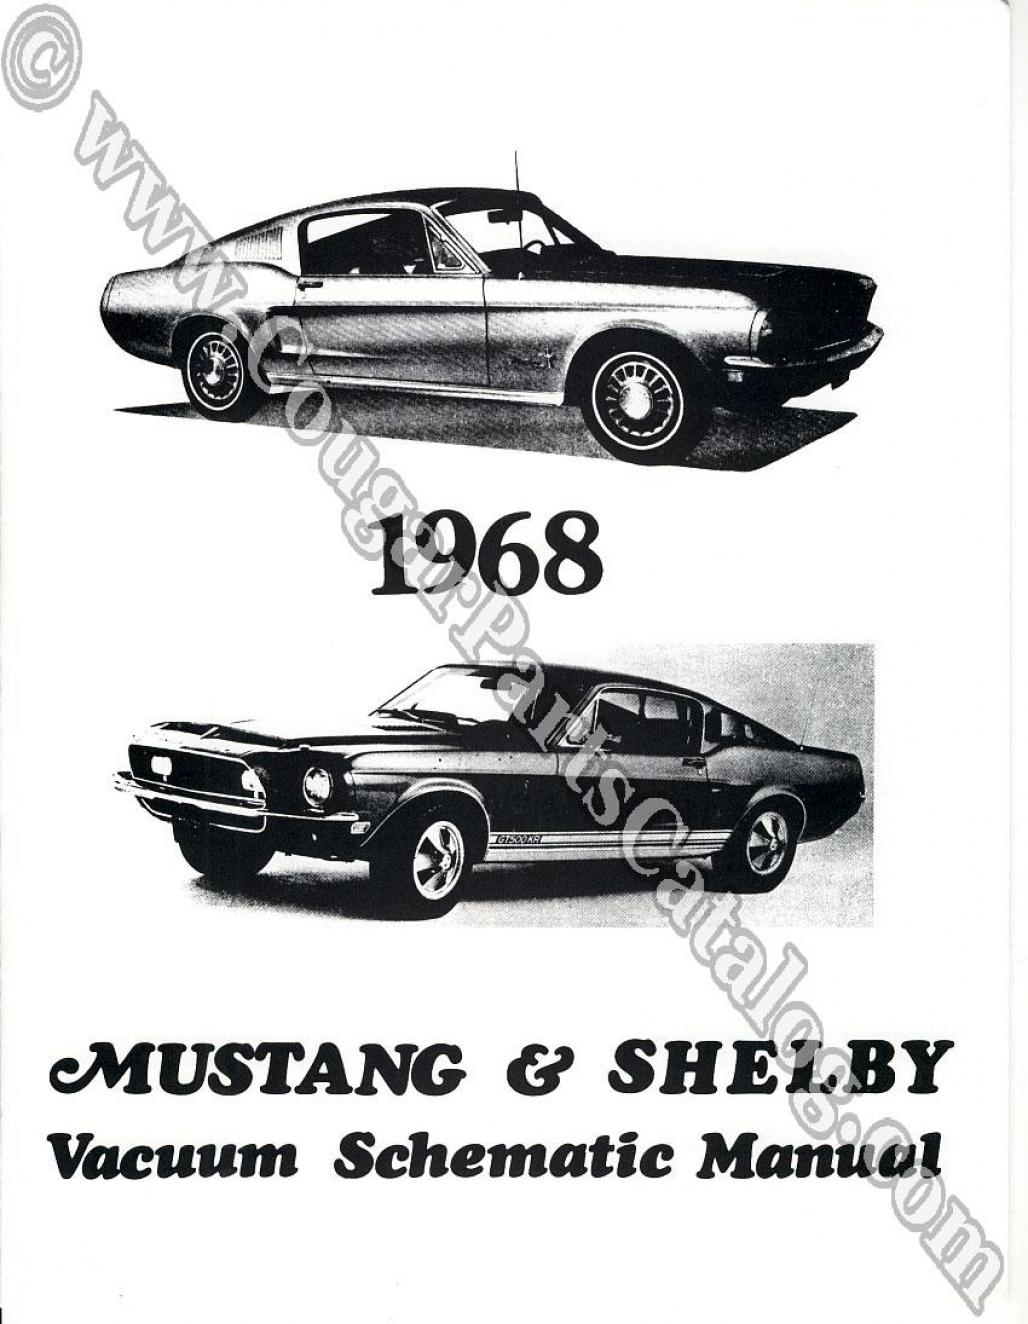 Manual Vacuum Schematic W Cougar Headlight Schematic For 1968 Mercury Cougar 1968 Ford Mustang At West Coast Classic Cougar The Definitive 1967 1973 Mercury Cougar Parts Source